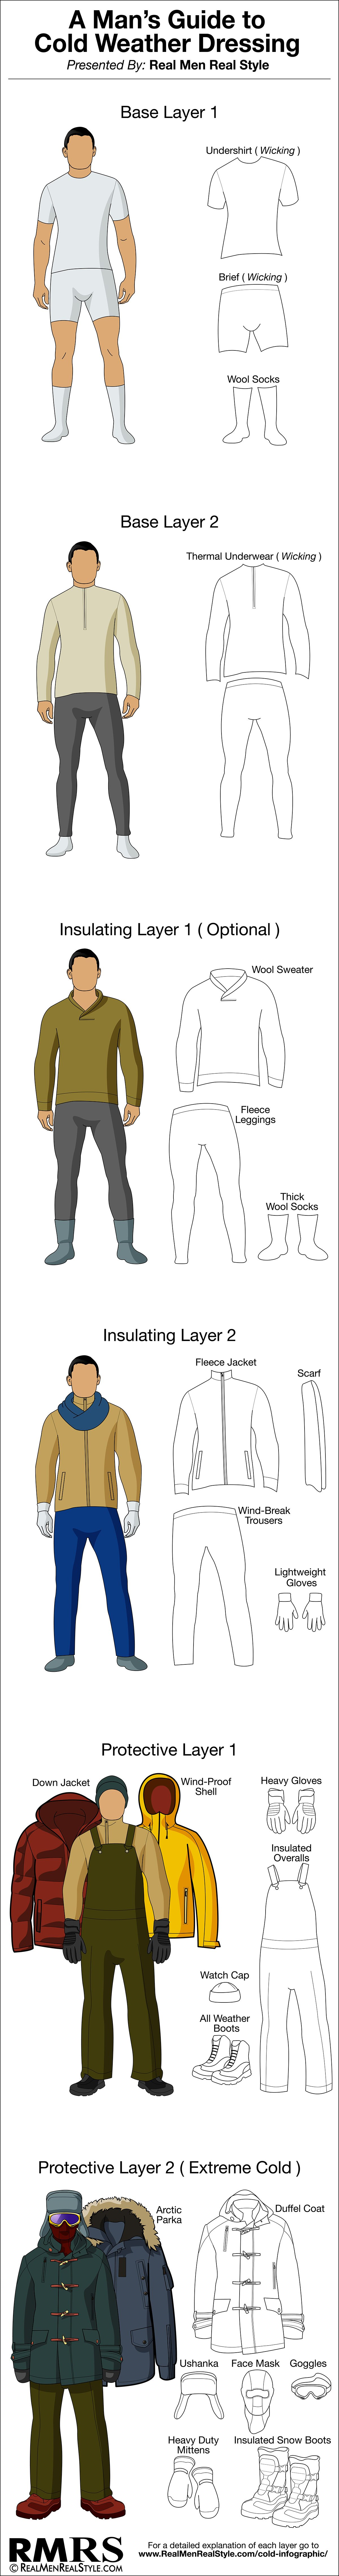 dressing-for-cold-weather-infographic